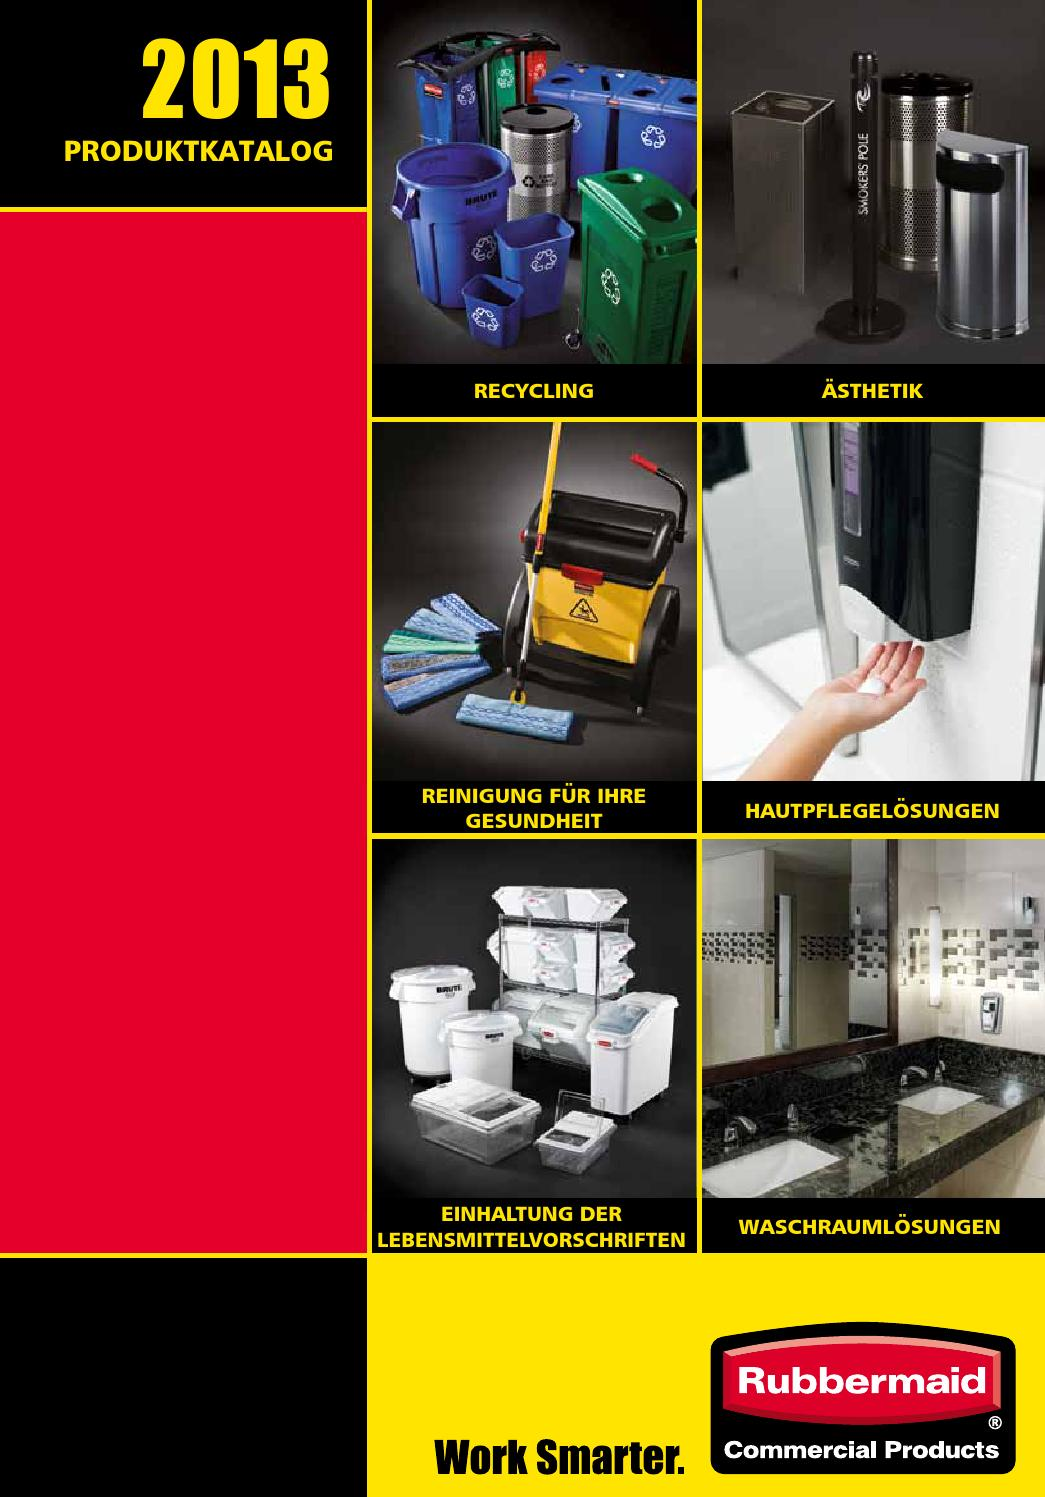 Rubbermaid Comemrcial Prodcuts 2013 Catalogue German Deutsch By Rubbermaid Issuu